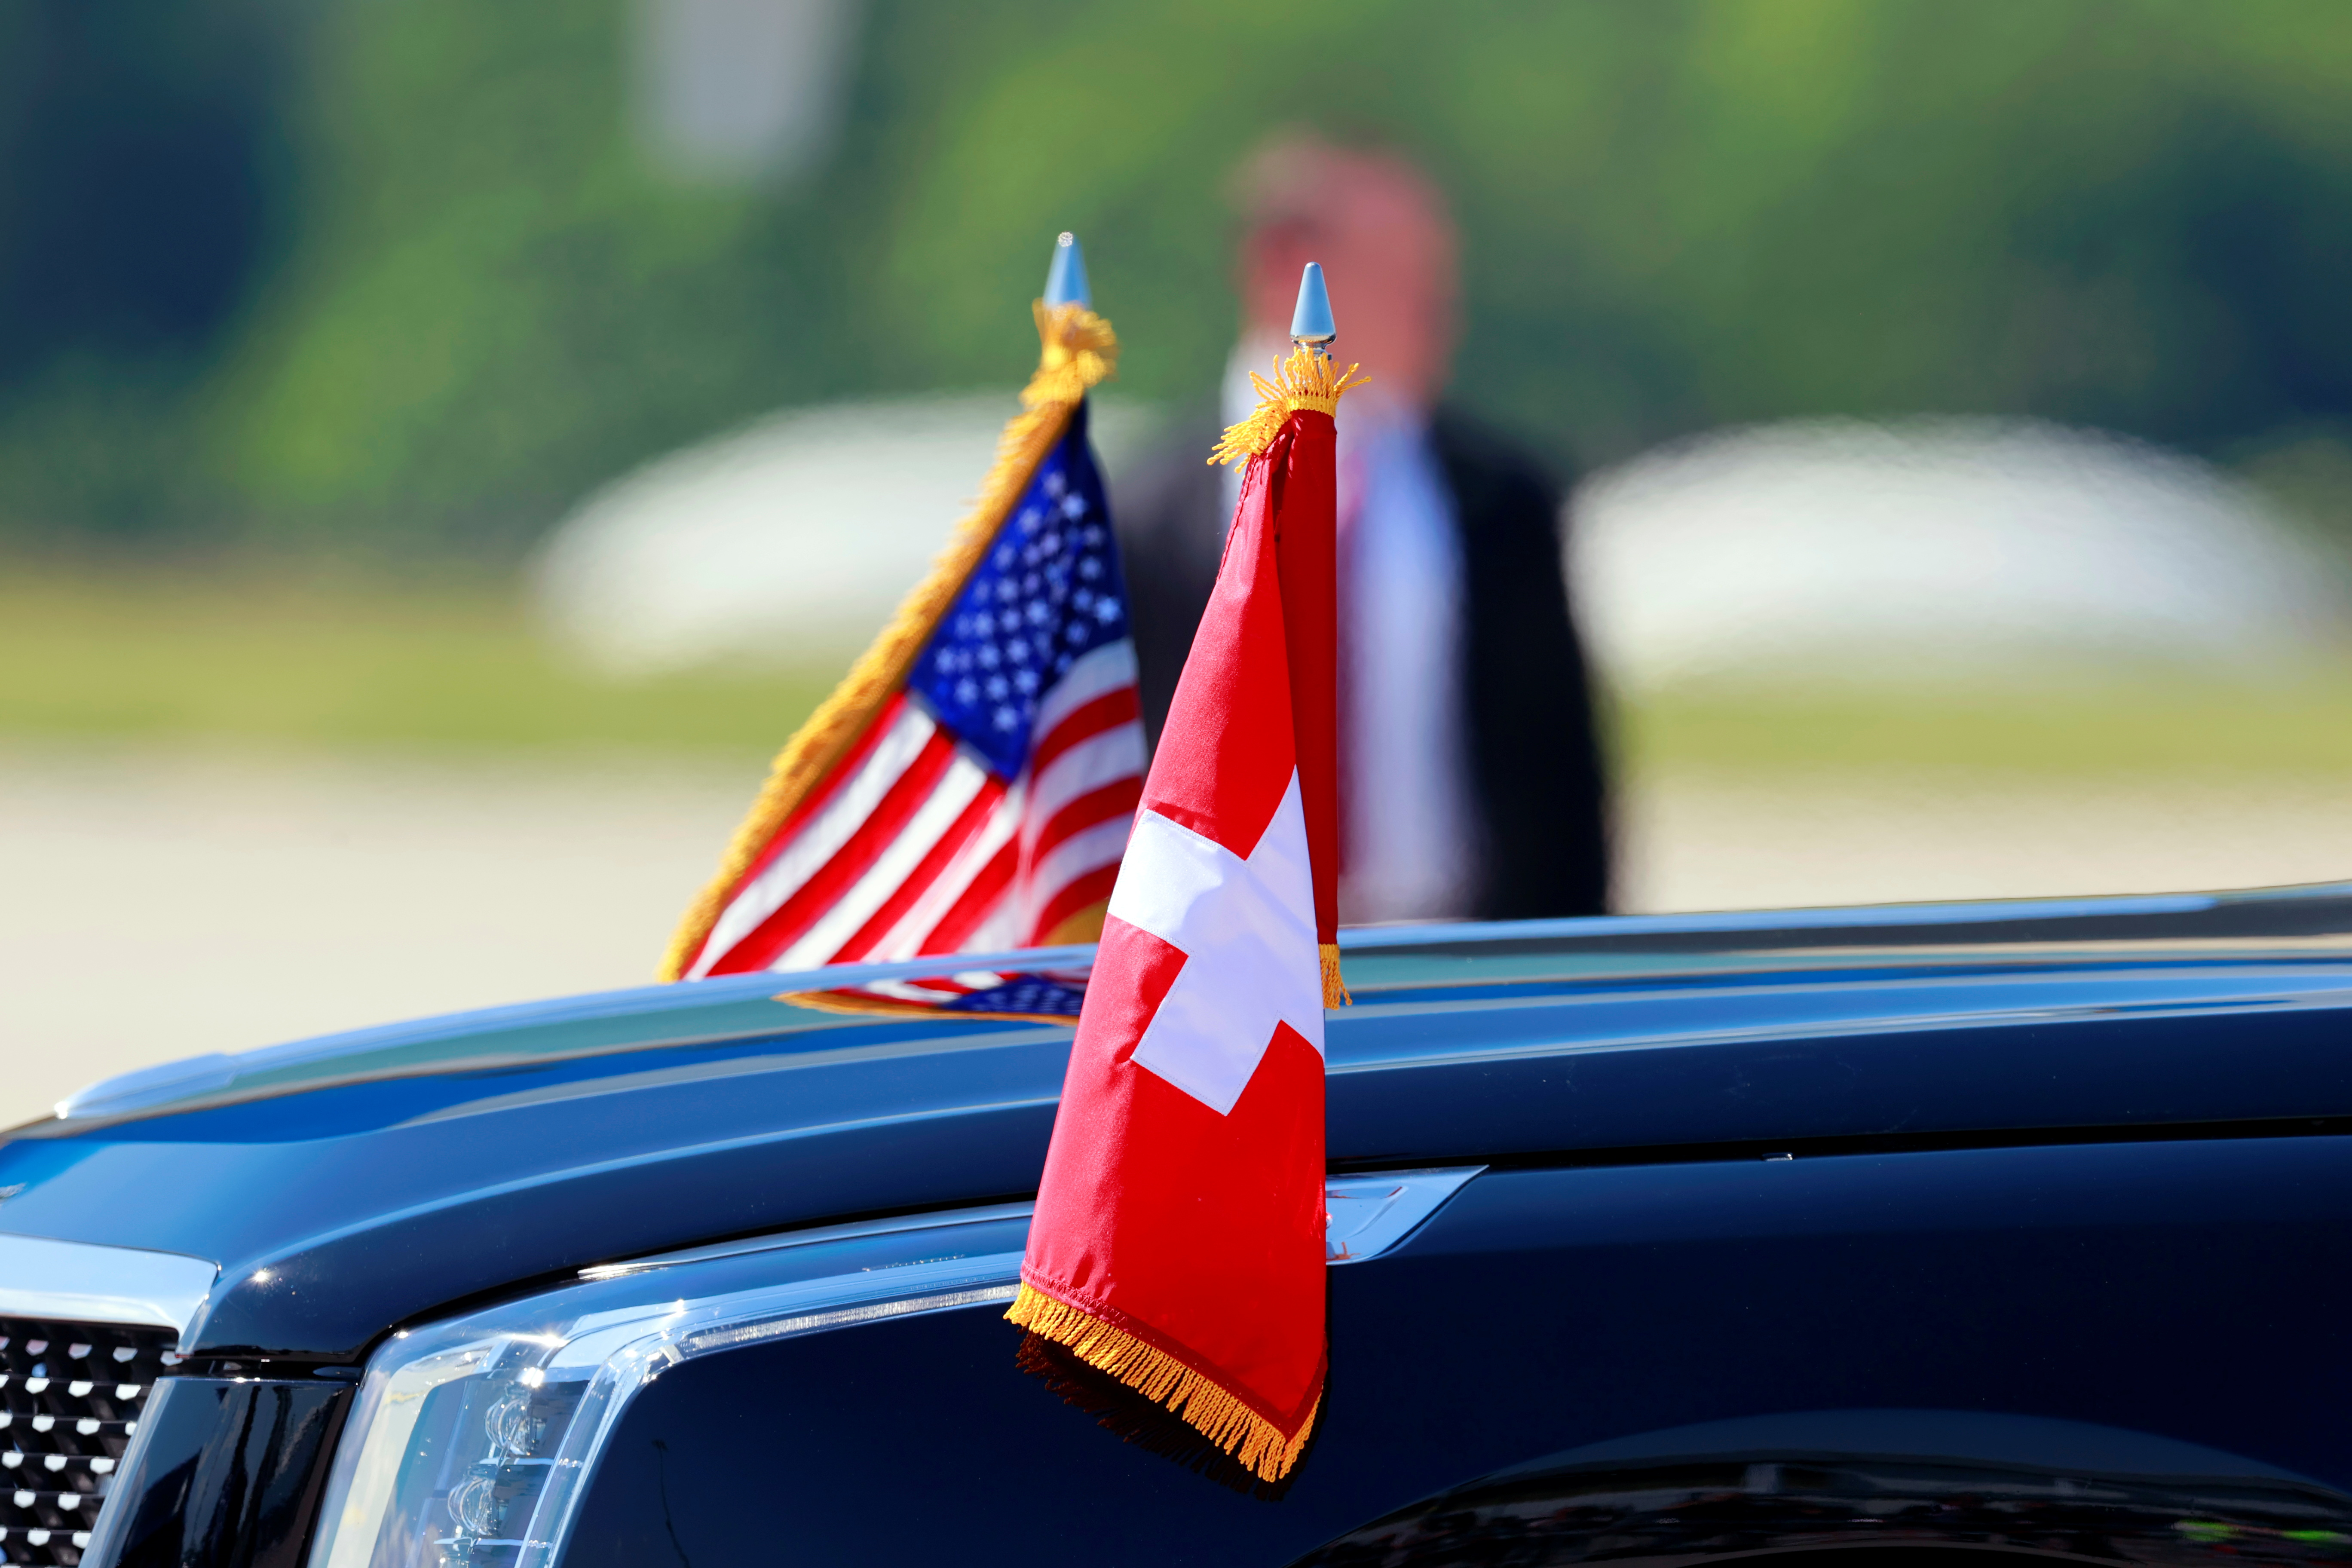 Flags of the U.S. and Switzerland are attached to a car during the arrival of U.S. President Joe Biden at Cointrin airport, ahead of a meeting with Russian counterpart Vladimir Putin in Geneva, Switzerland, June 15, 2021. REUTERS/Denis Balibouse/Pool